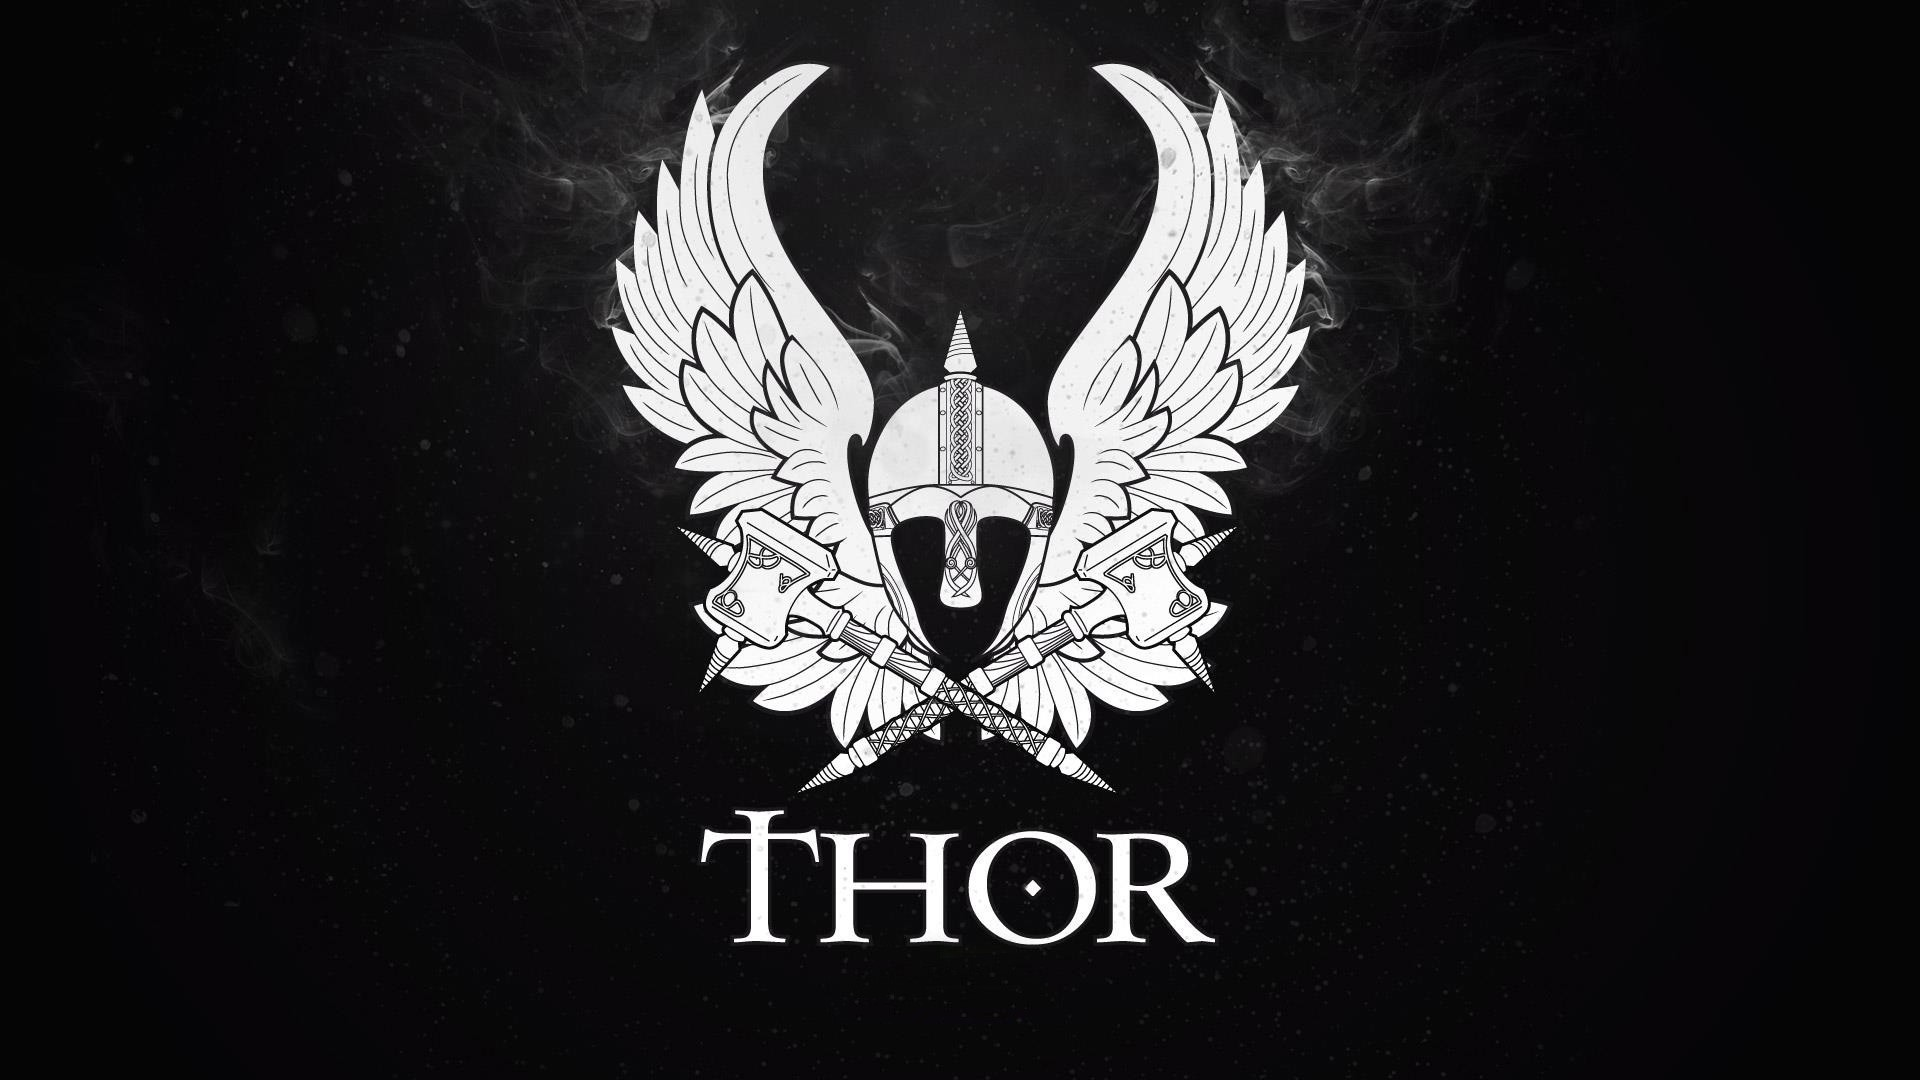 Res: 1920x1080, thor norse wallpaper and background. valkyries artwork norse mythology